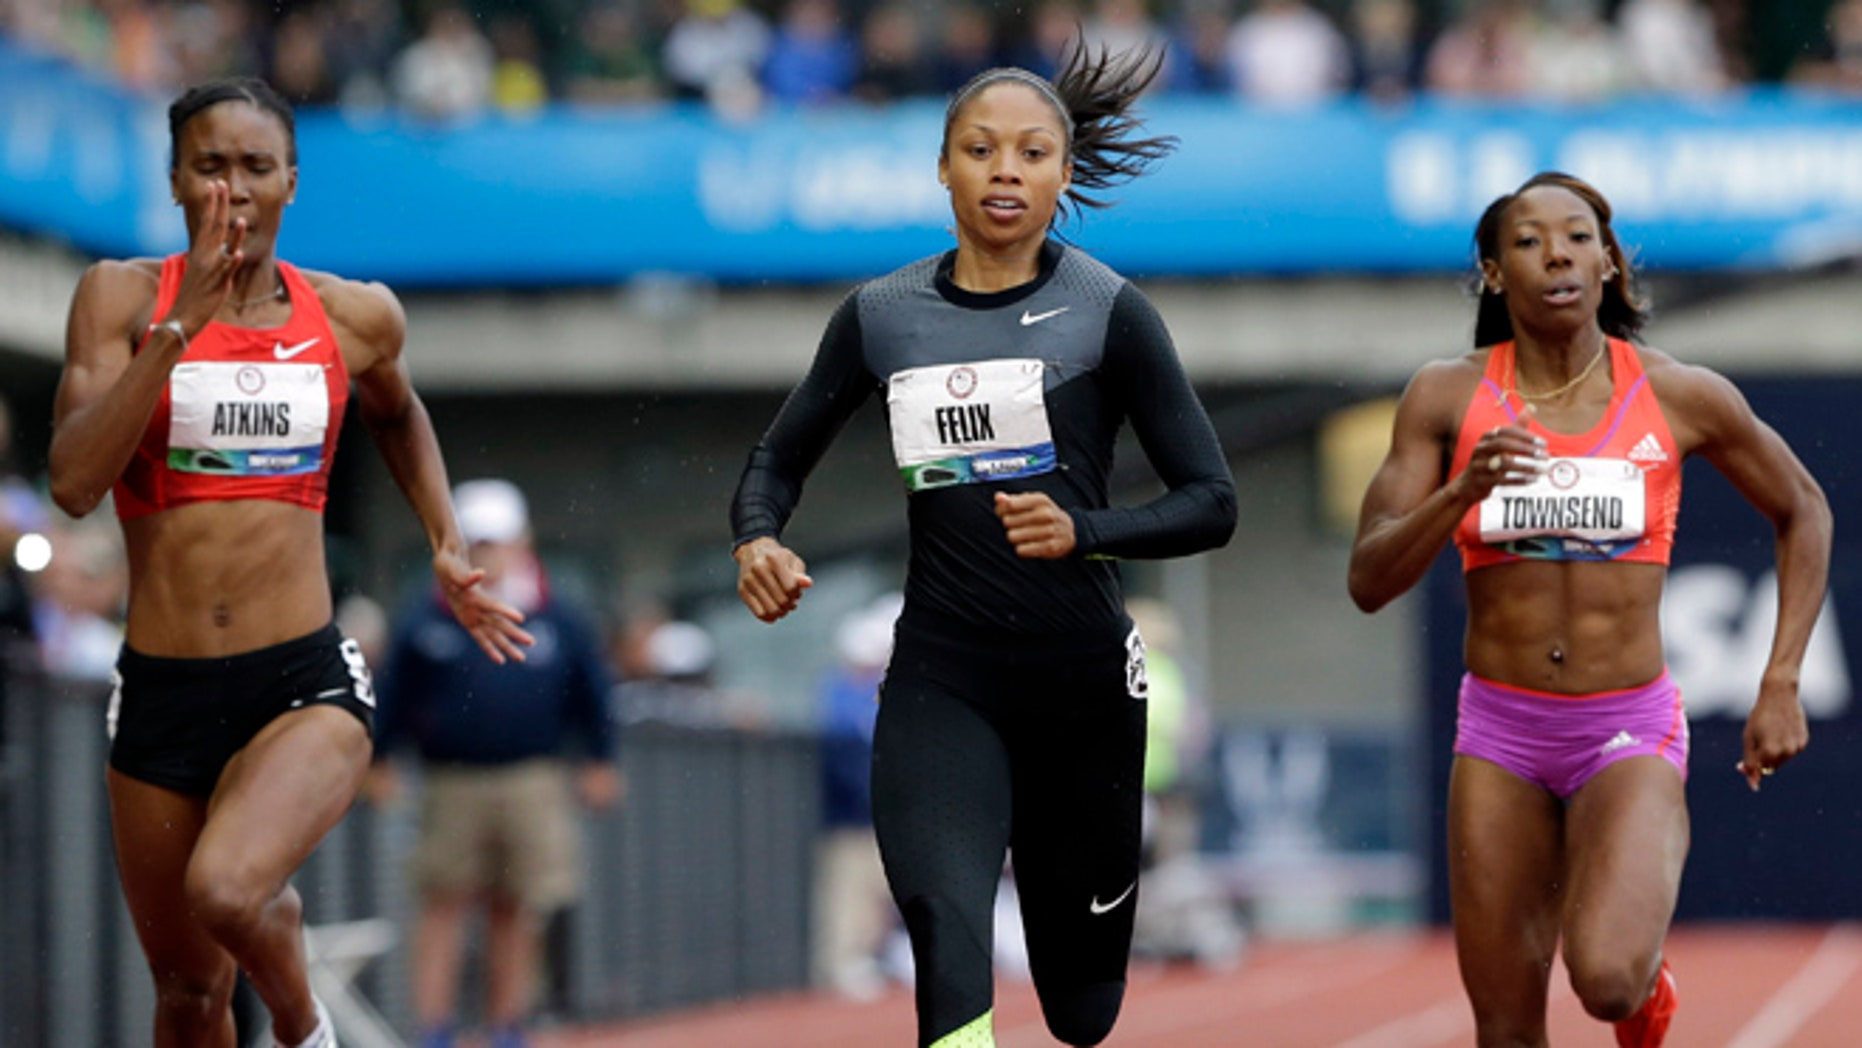 June 28, 2012: Allyson Felix finishes her heat in the women's 200 meters at the U.S. Olympic Track and Field Trials in Eugene, Ore ahead of Joanna Atkins, left, and Tiffany Townsend.